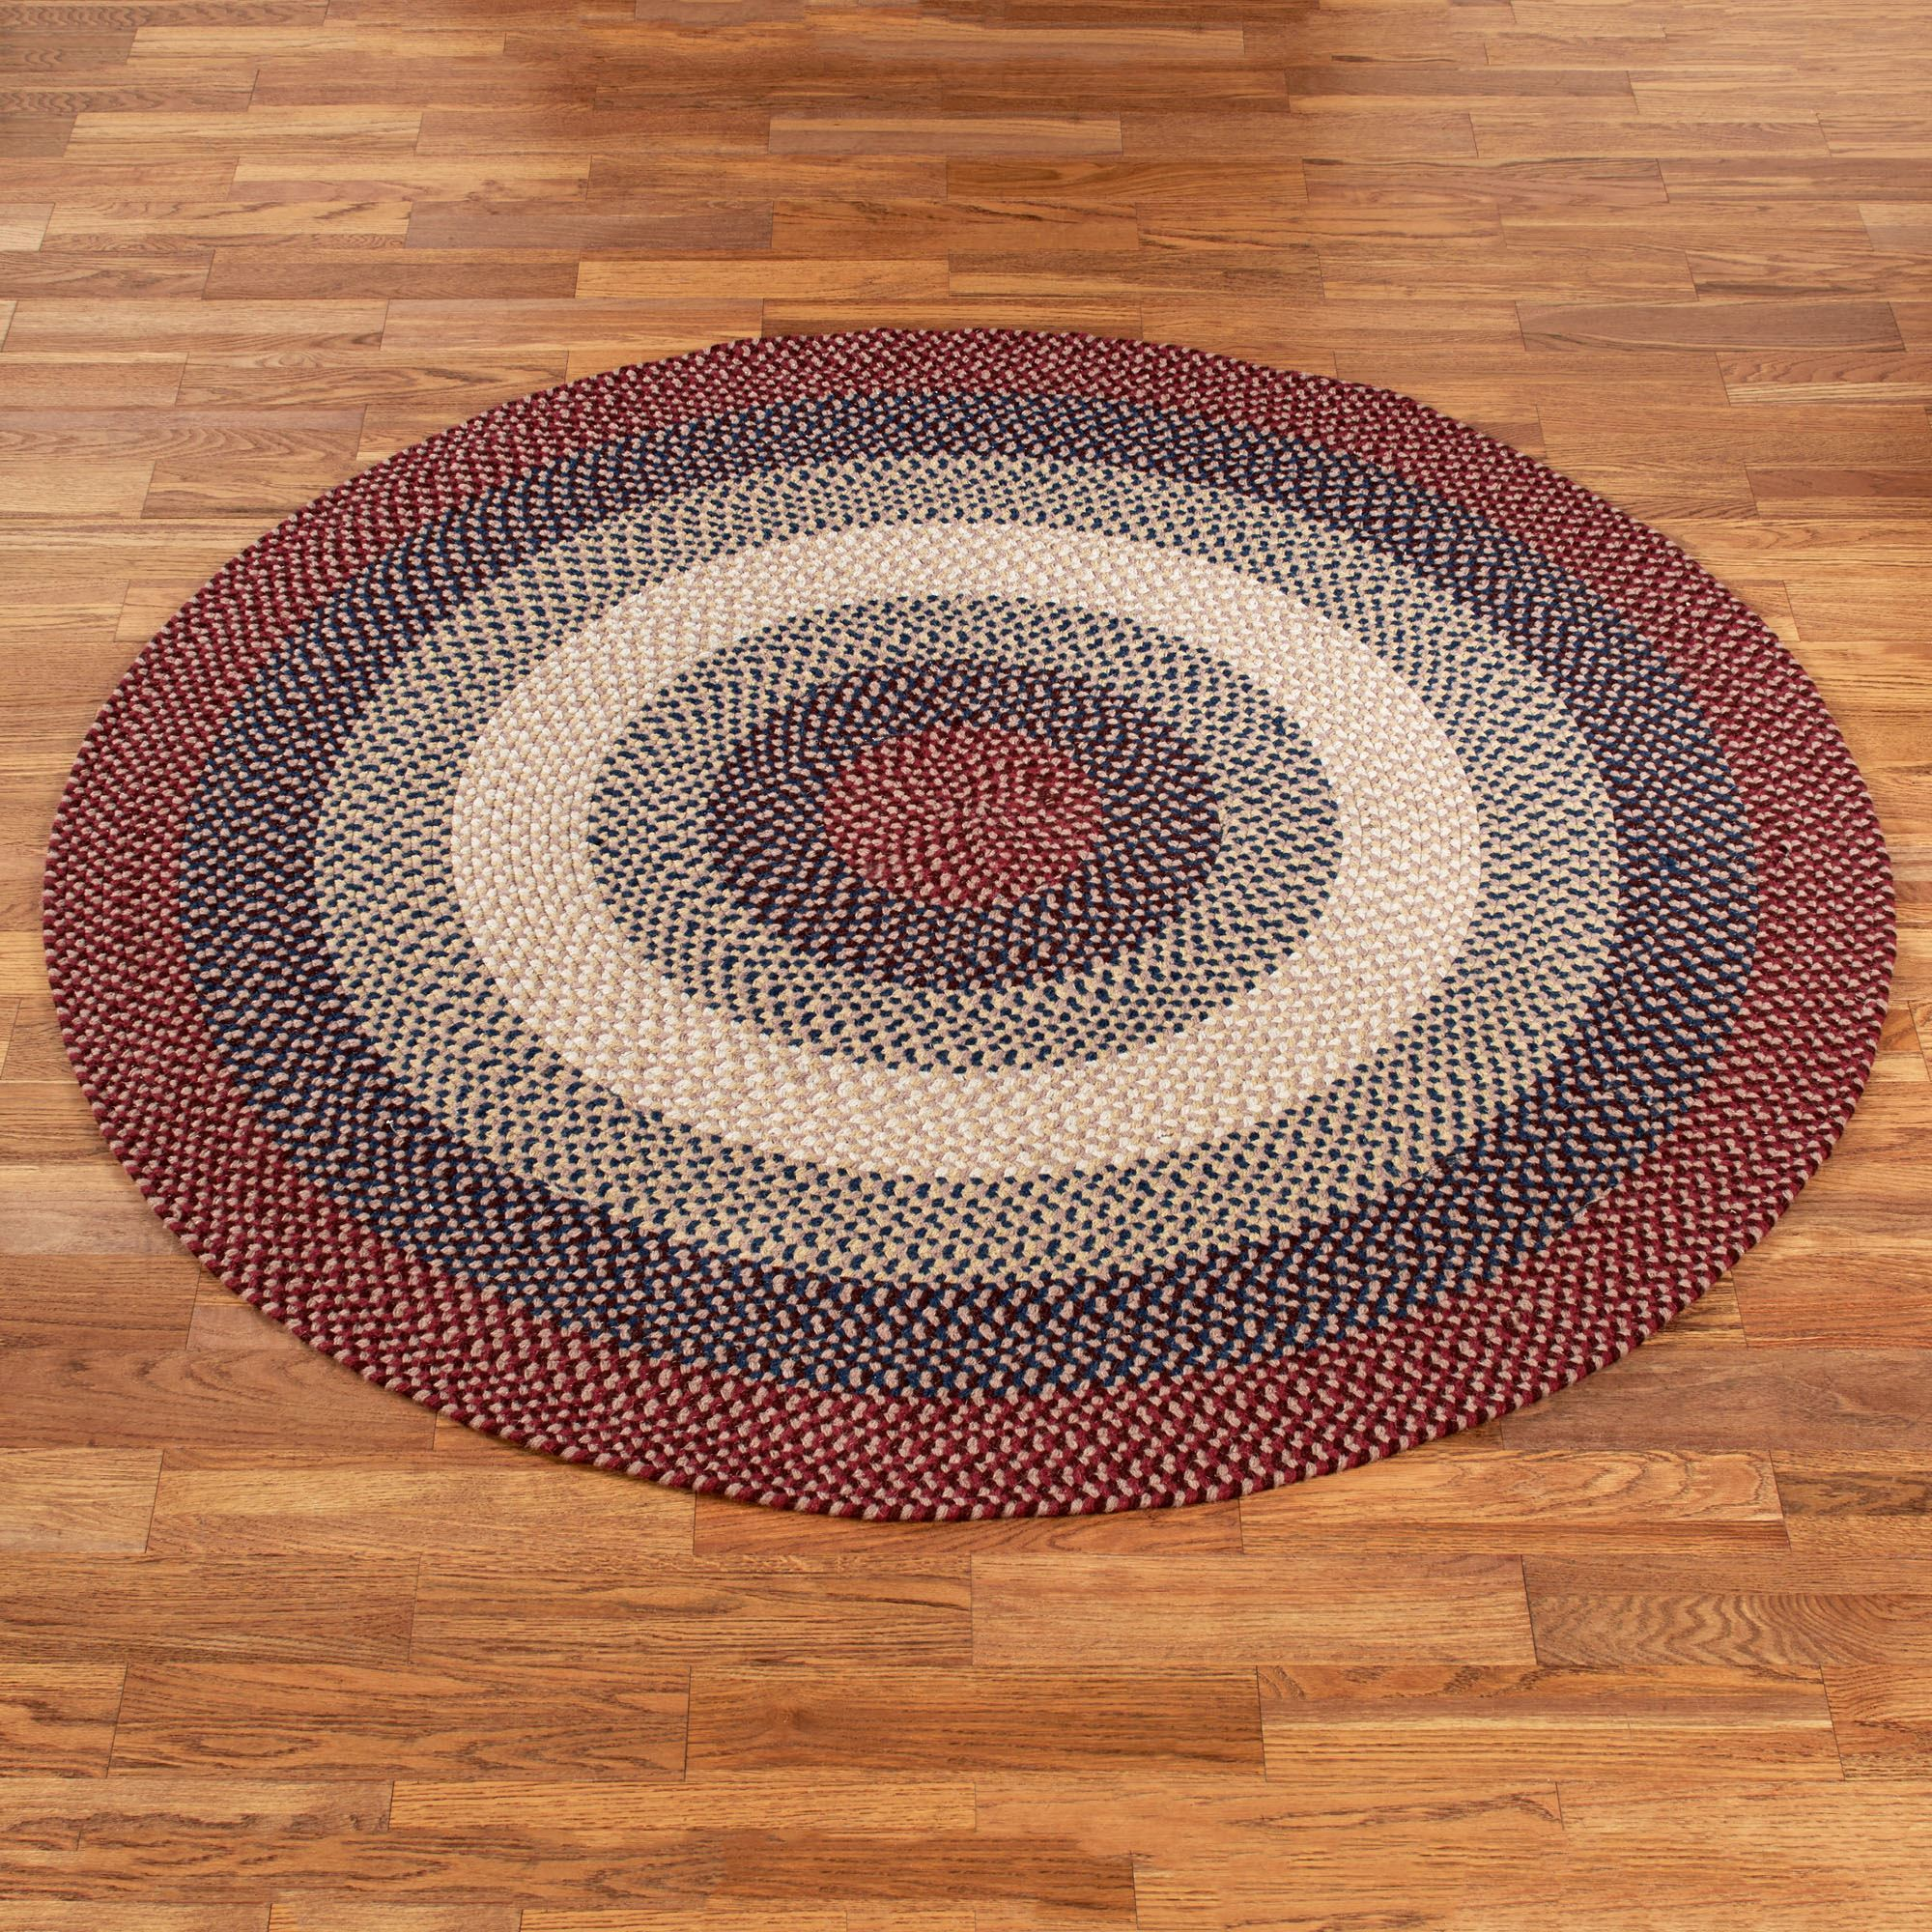 rug red rhody room area round oriental country for in oval hand brown braided throw wonderful yellow karastan rope weavers living rugs stunning playtime tufted inc x